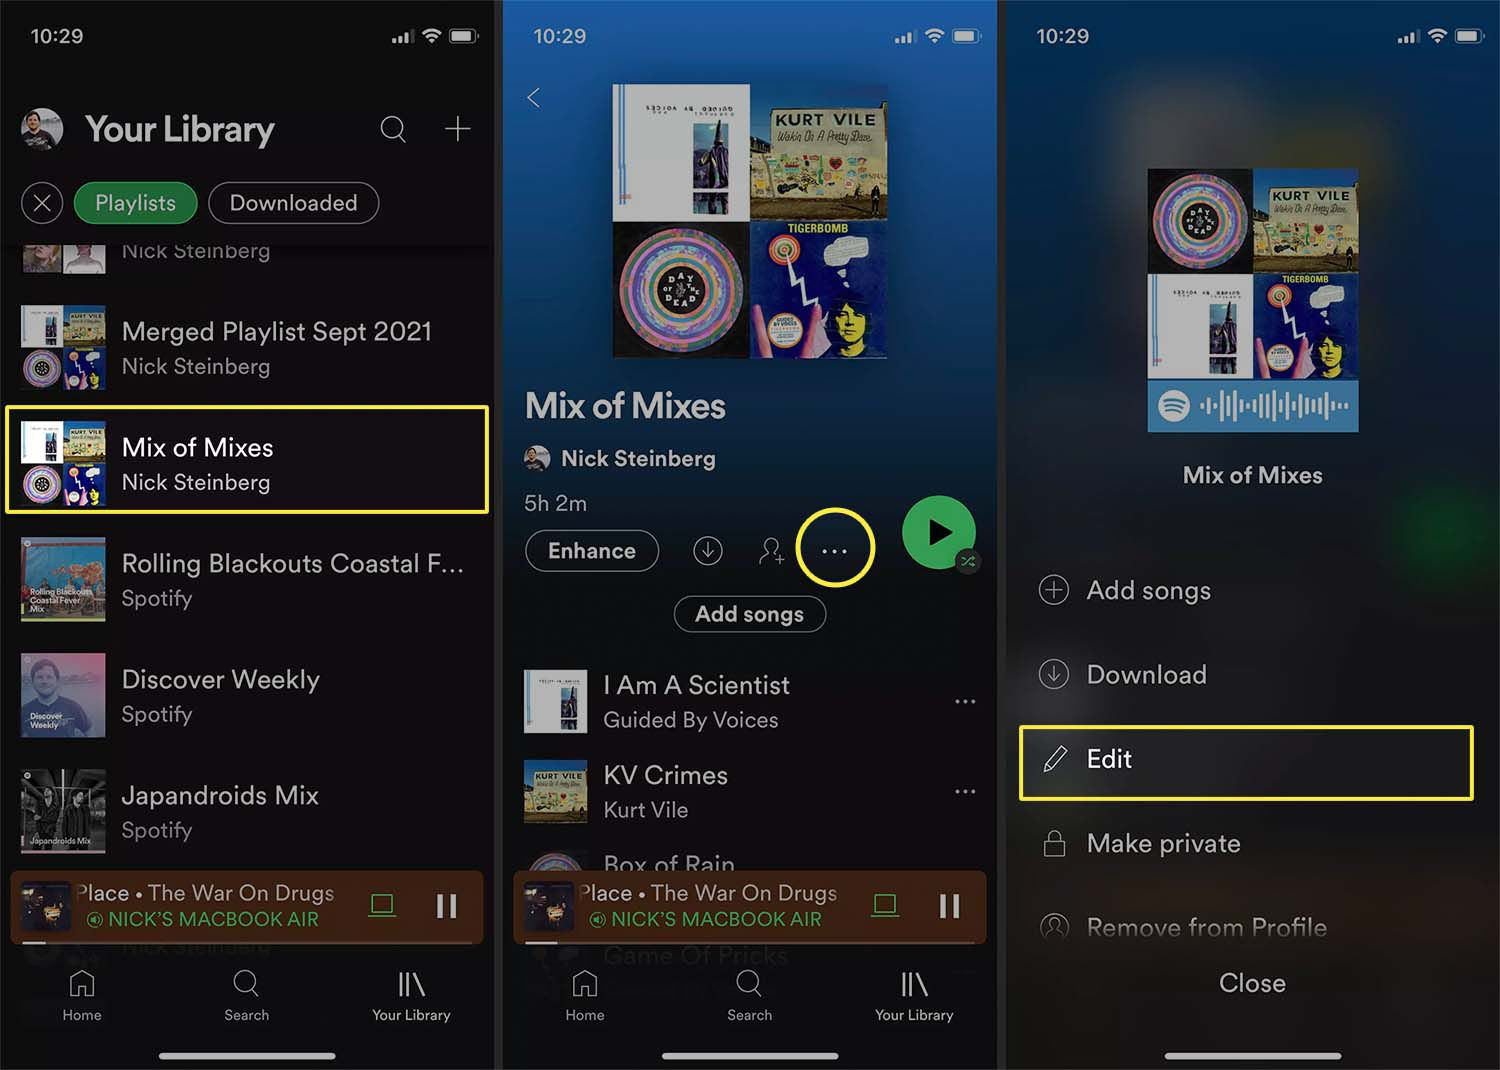 Editing playlist picture on Spotify iOS app.